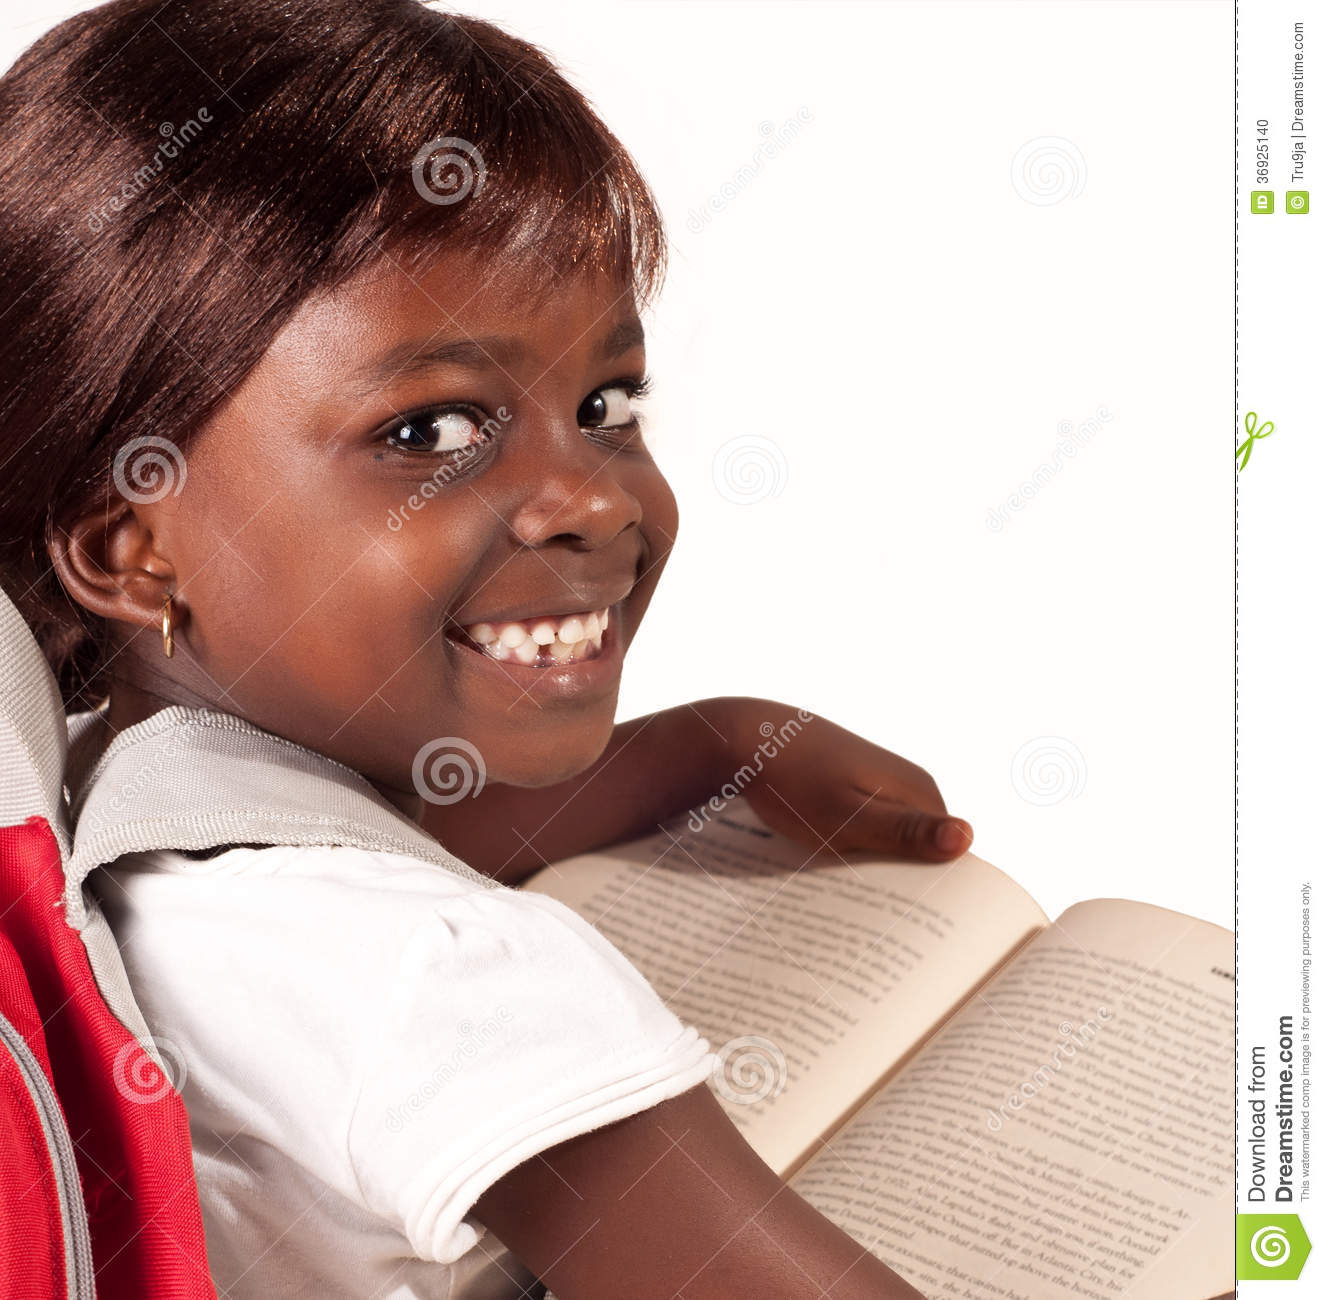 Clever School Girl: African School Girl Smiling At The Camera Stock Photo